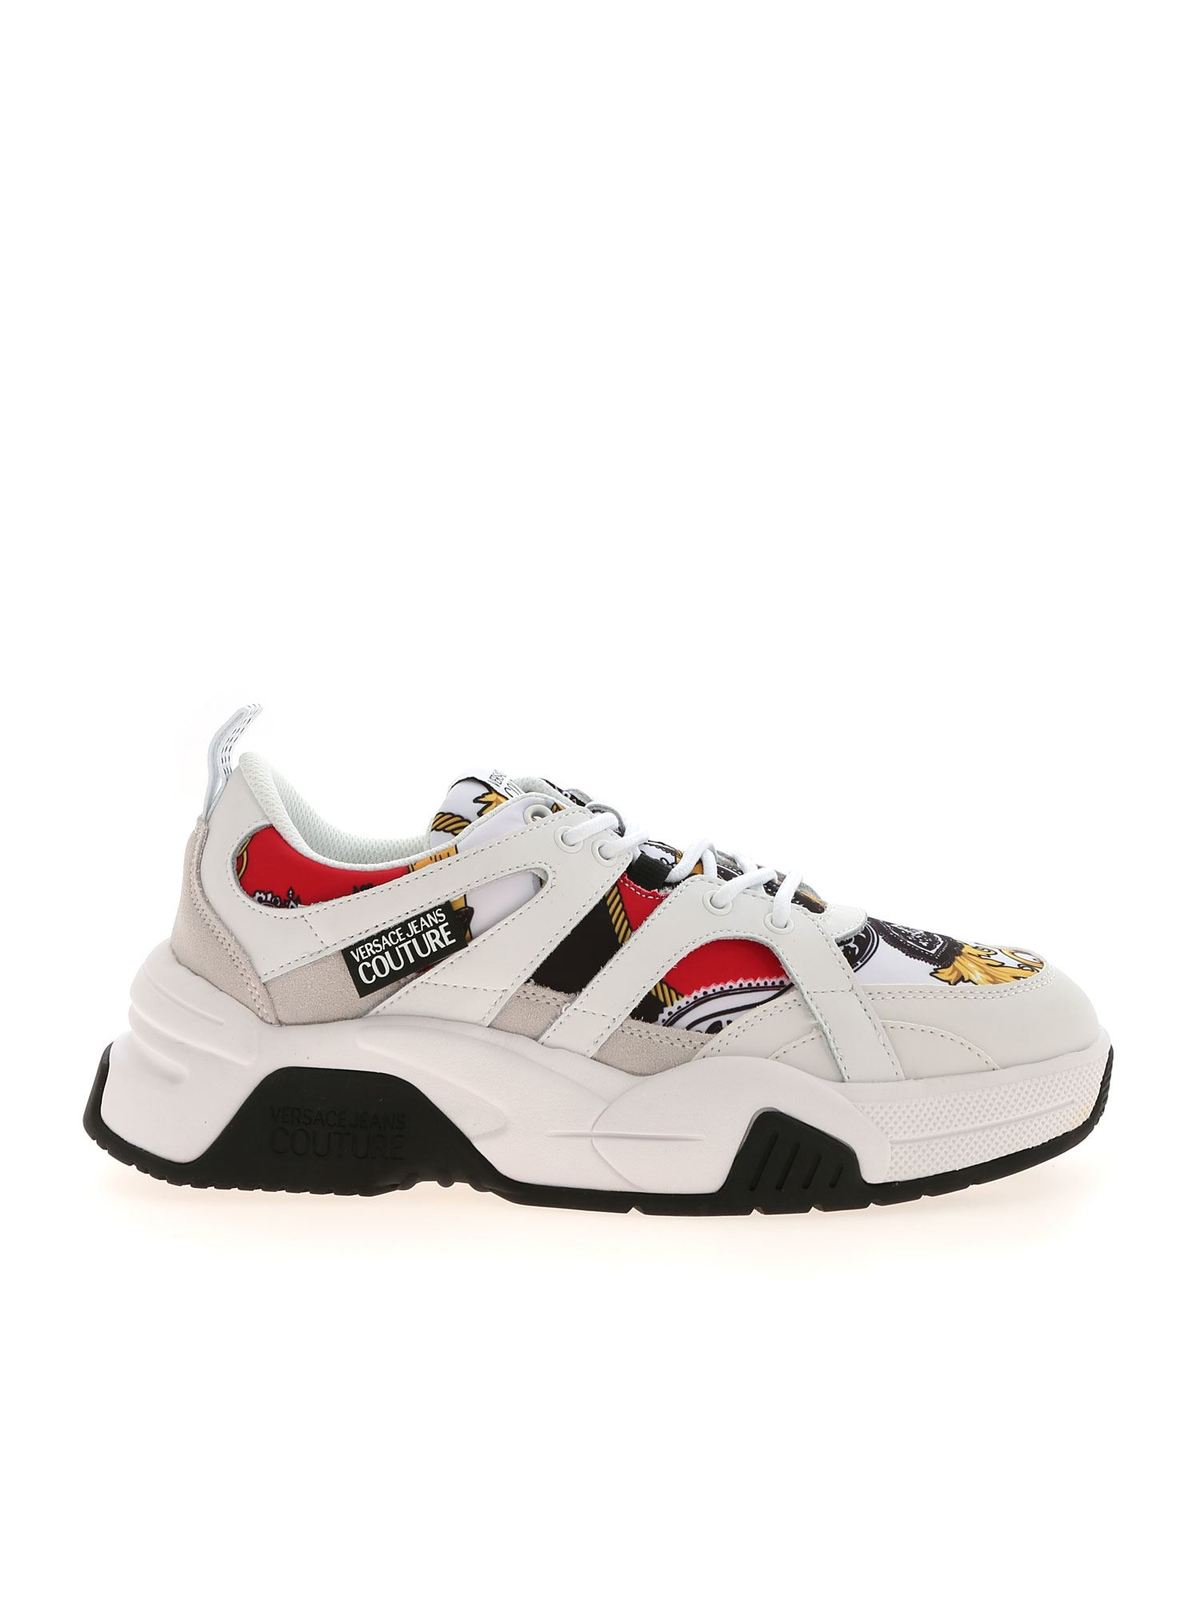 Versace Jeans Couture CONTRASTING DETAILS SNEAKERS IN WHITE